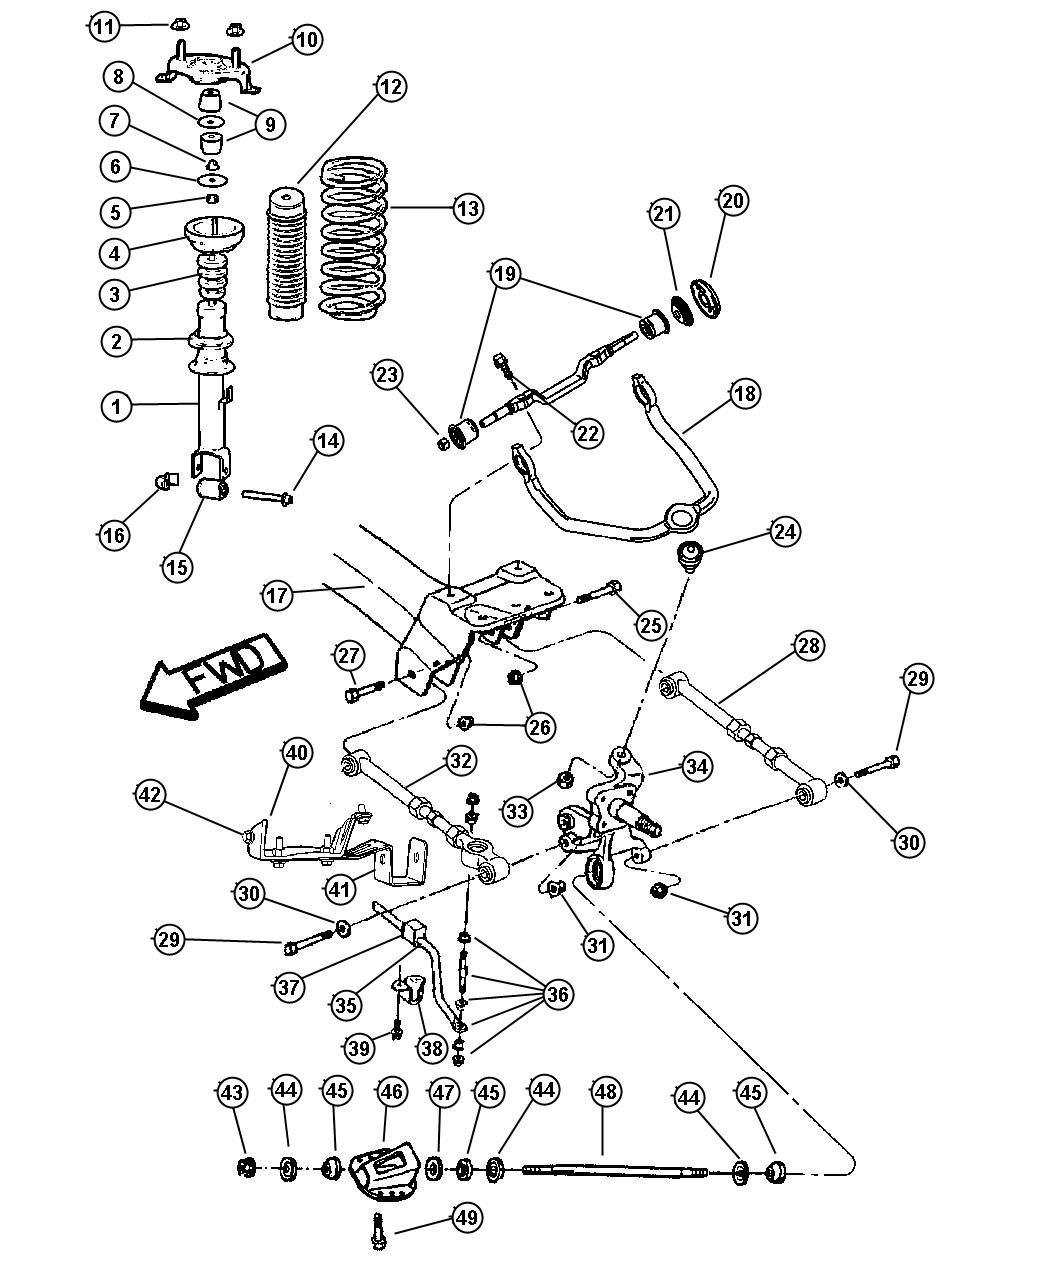 2004 Dodge Neon Parts Diagram Rear Suspension. Dodge. Auto